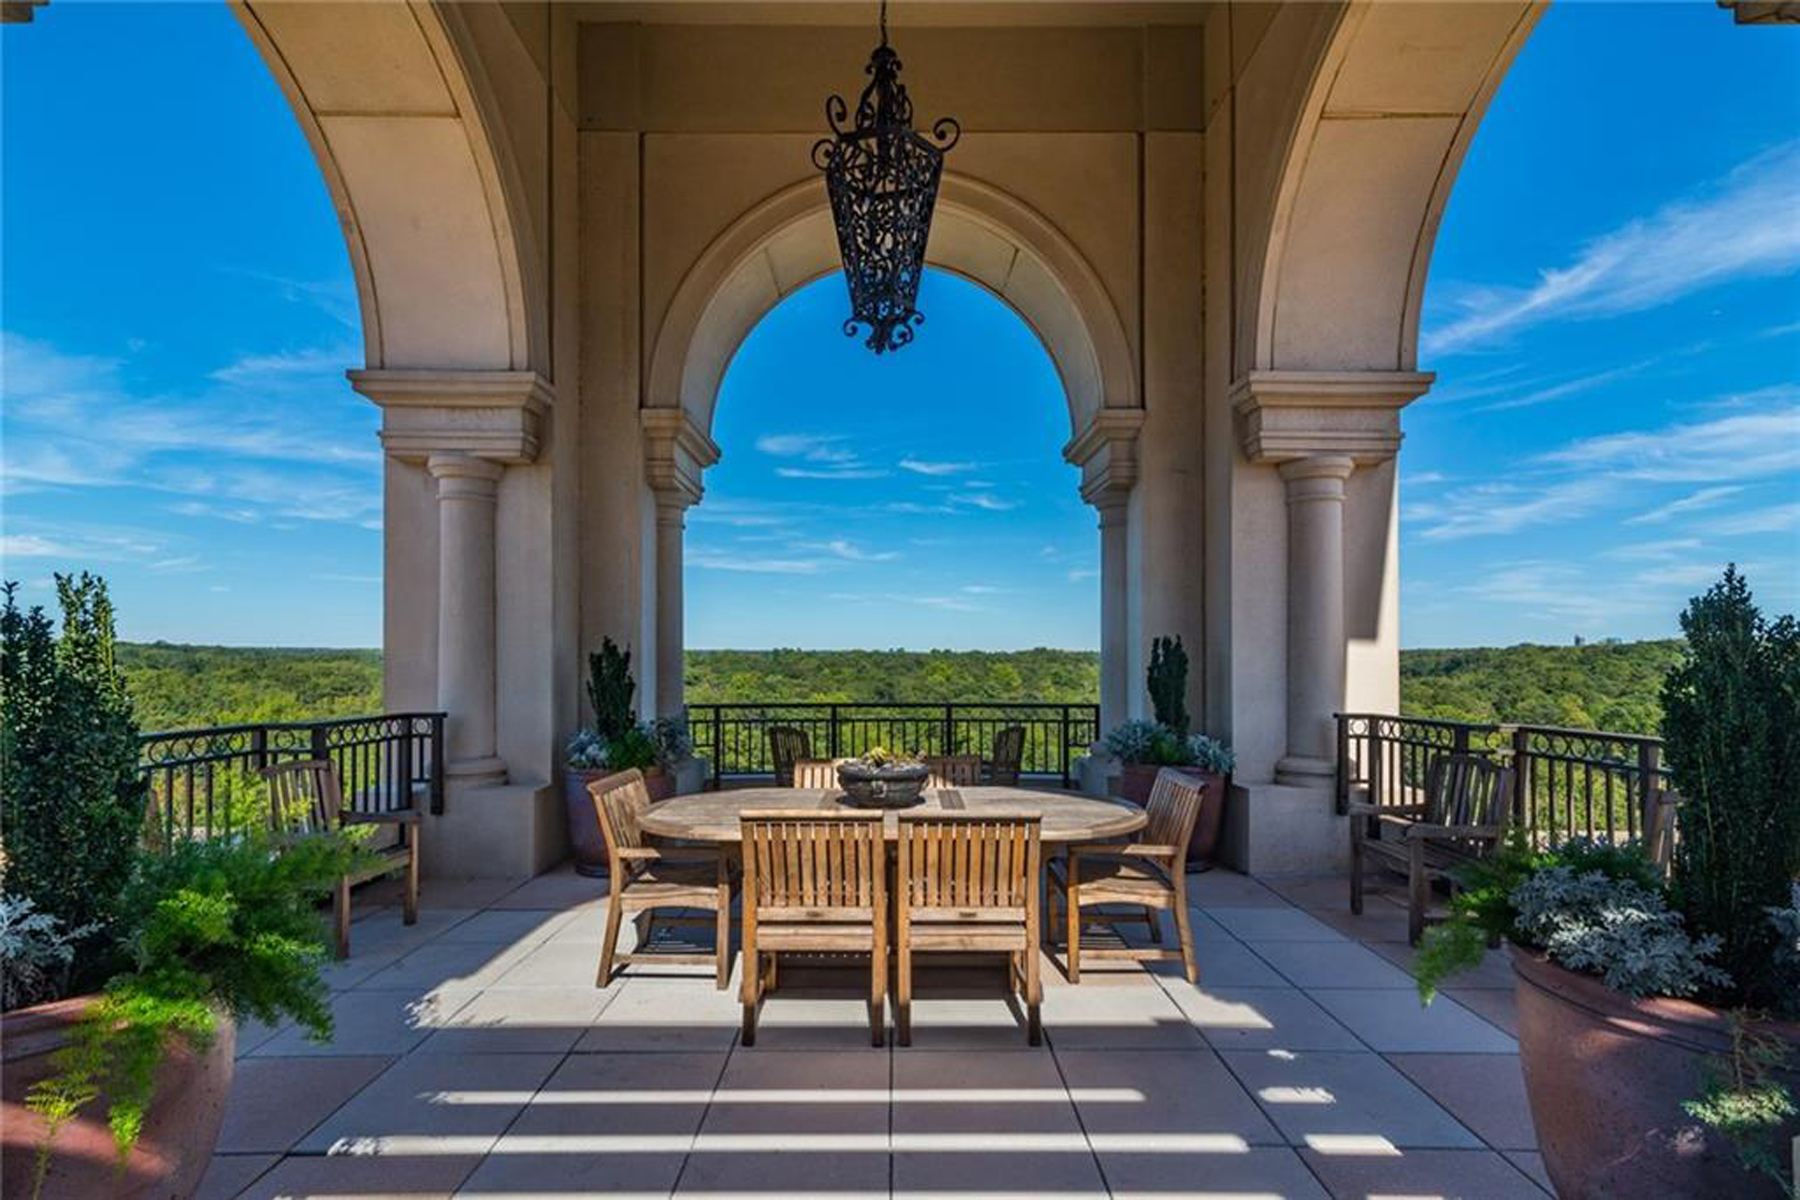 Condominiums для того Продажа на Five Star Full Service Living in the Beautiful Borghese 3286 Northside Pkwy 804, Atlanta, Джорджия 30327 Соединенные Штаты